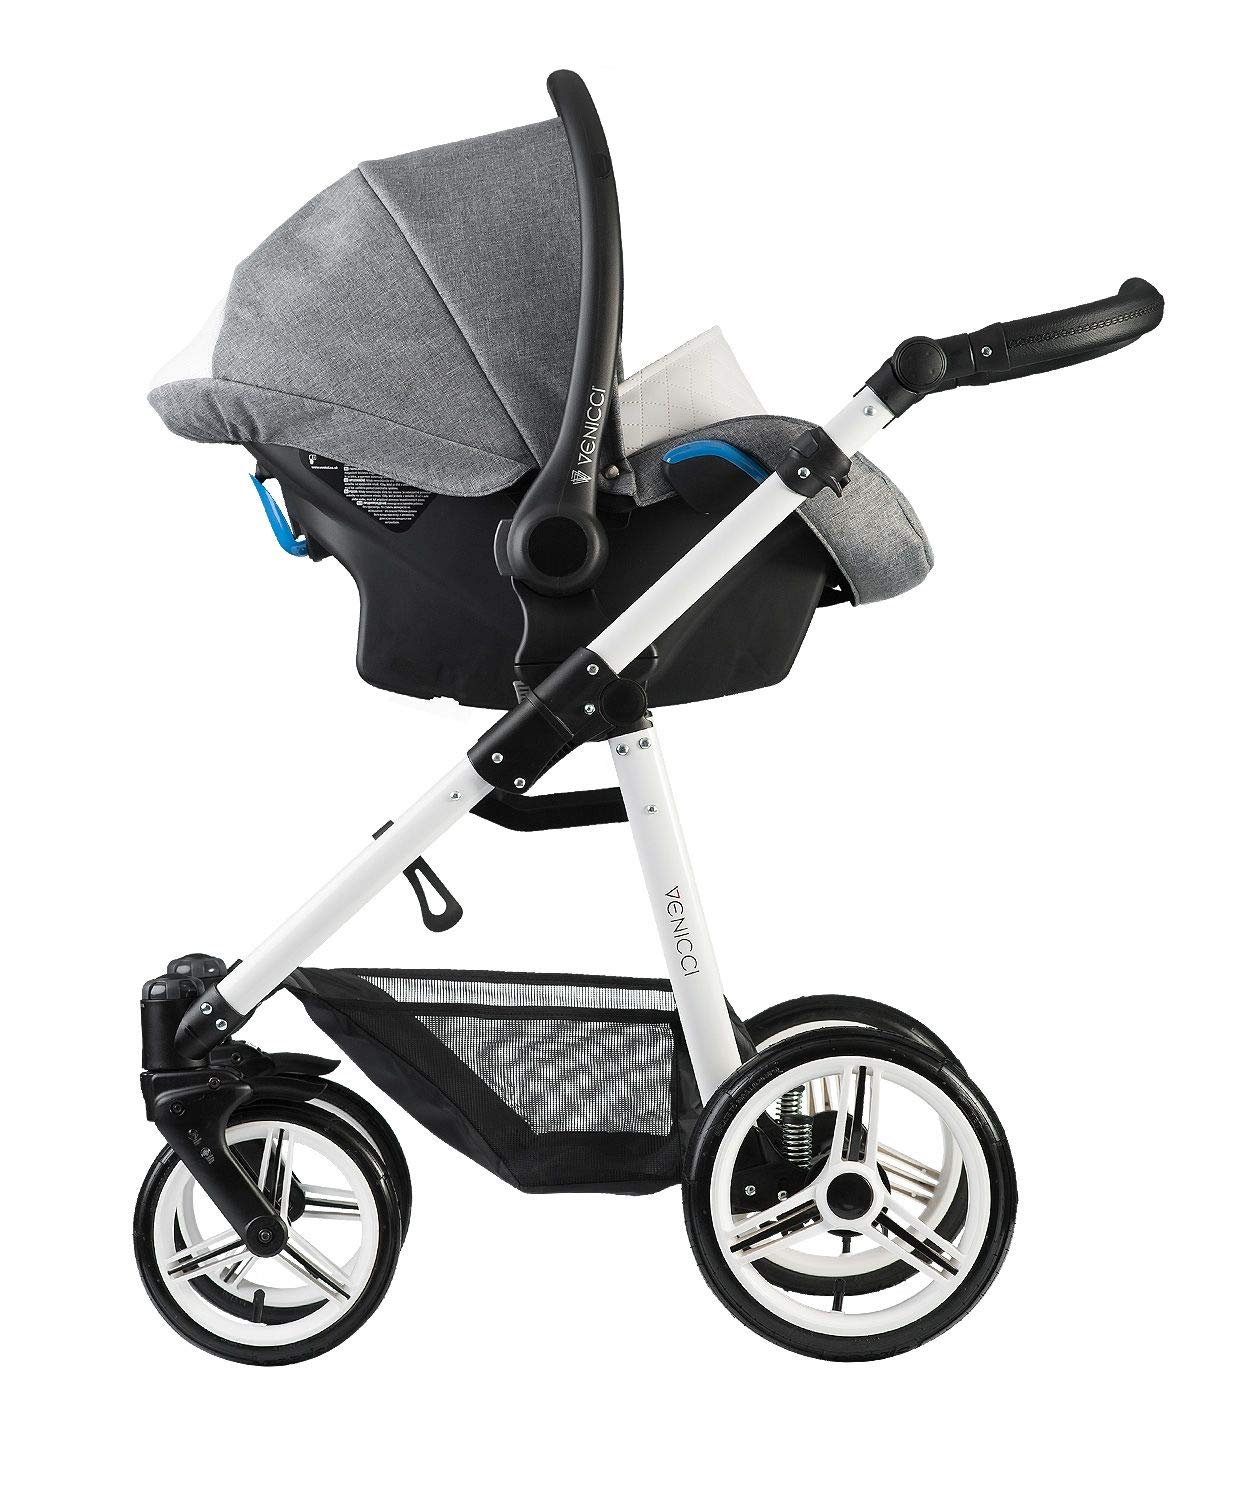 Venicci Pure 3-in-1 Travel System - Denim Grey - with Carrycot + Car Seat + Changing Bag + Apron + Raincover + Mosquito Net + 5-Point Harness and UV 50+ Fabric + Car Seat Adapters + Cup Holder Venicci 3 in 1 Travel System with included Group 0+ Car Seat Suitable for your baby from birth until 36 months 5-point harness to enhance the safety of your child 4